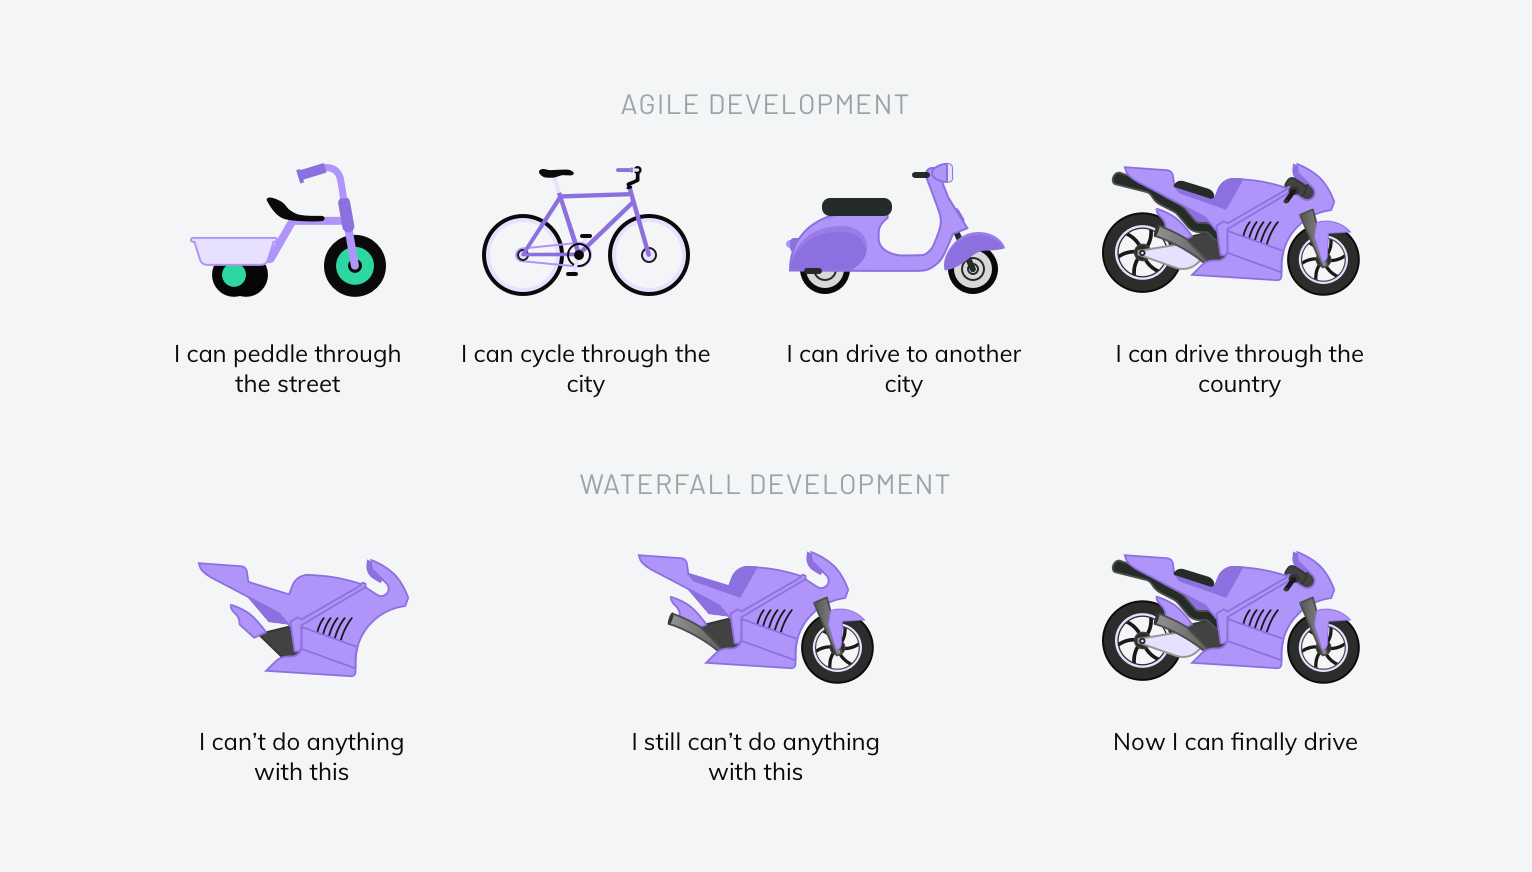 The benefits of working with an Agile development team